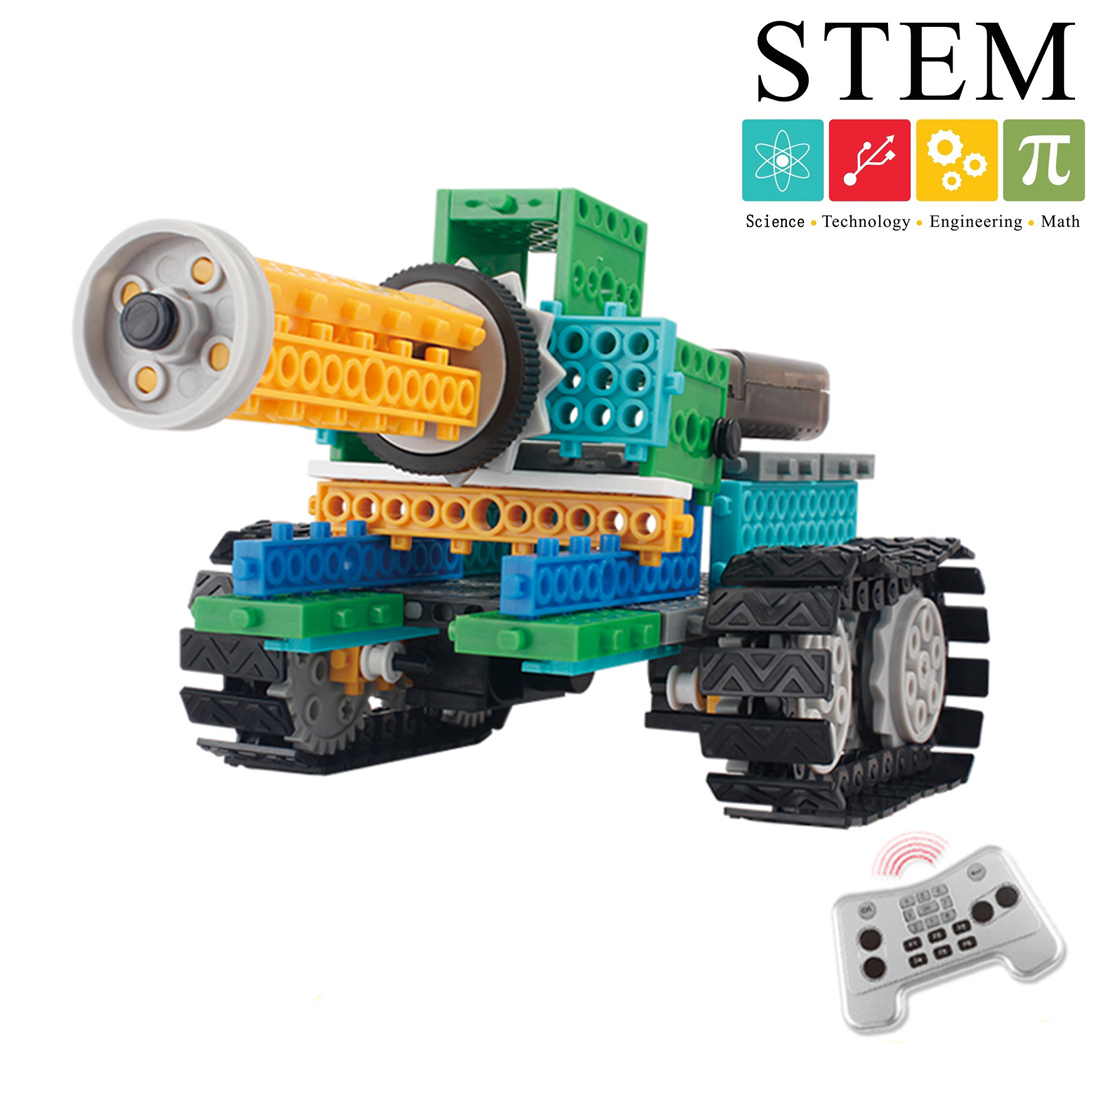 237Pcs 4-in-1 4CH DIY Changeable RC <font><b>Tank</b></font> Robot Assembly Steam Model Building Block Creative Science Learning Educational Toy image